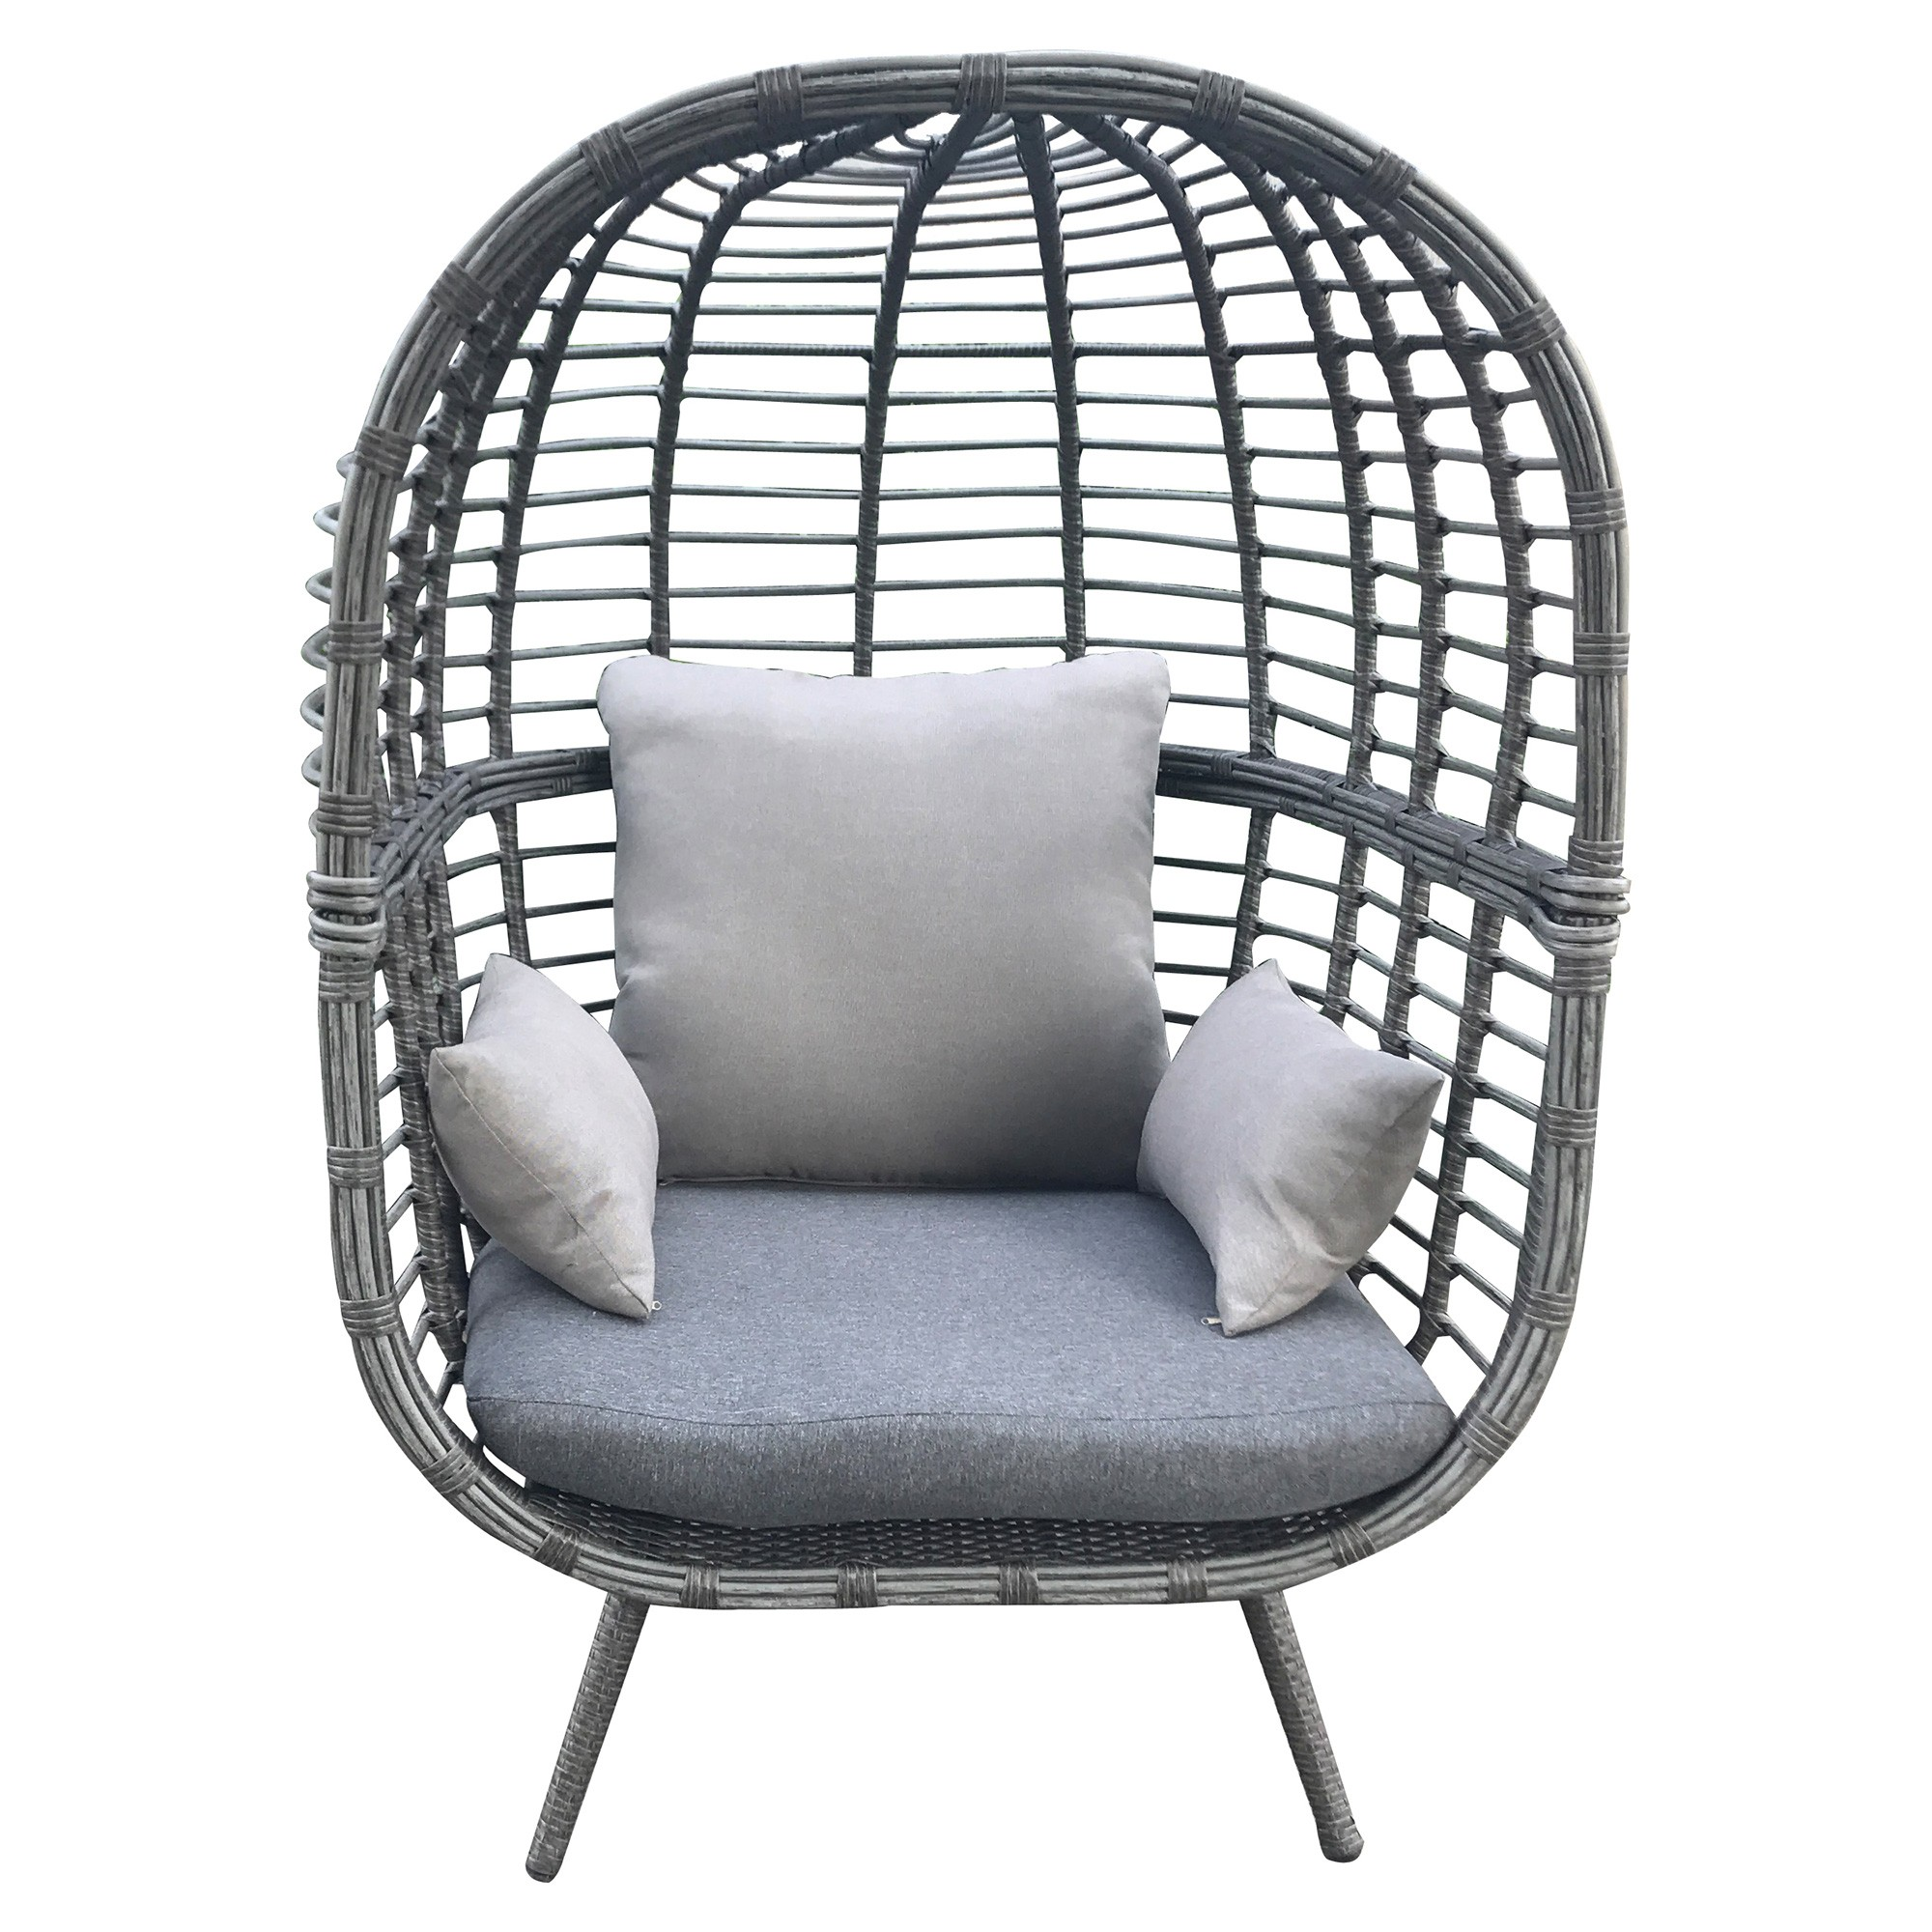 Hervey Rattan Outdoor Lounge Chair, Single